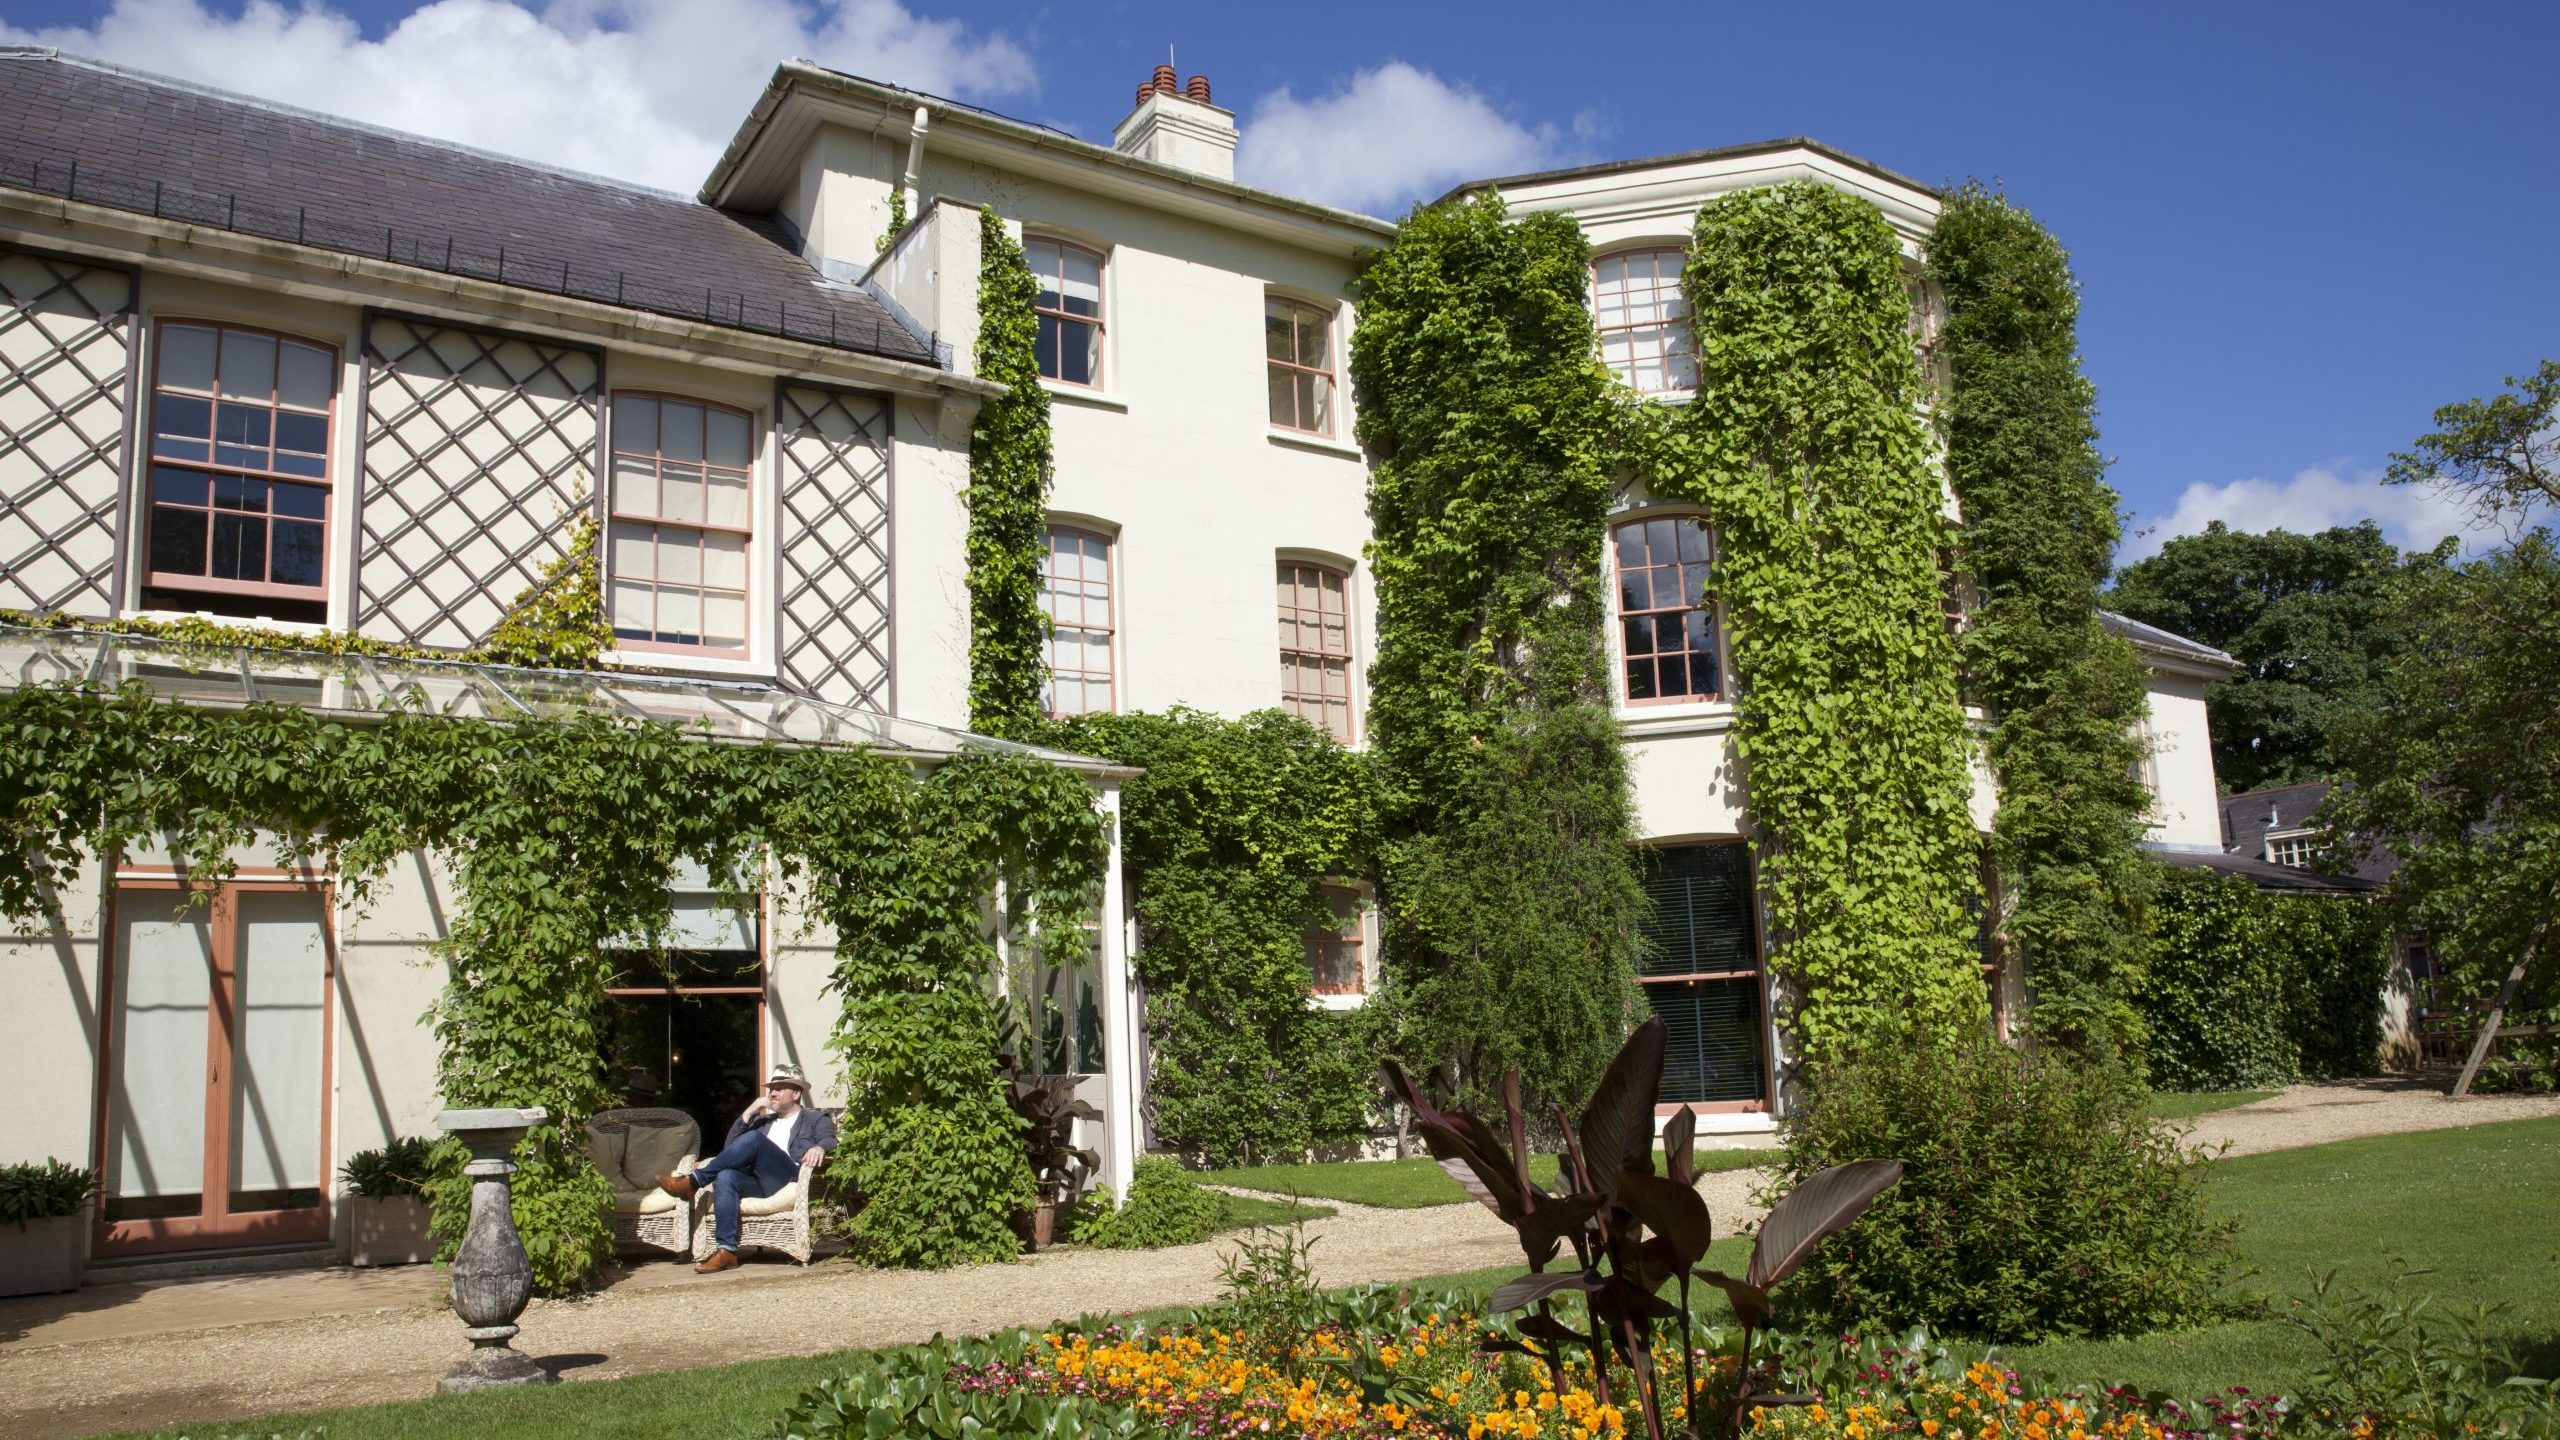 The gardens of the former home of Charles Darwin, Down House, are open